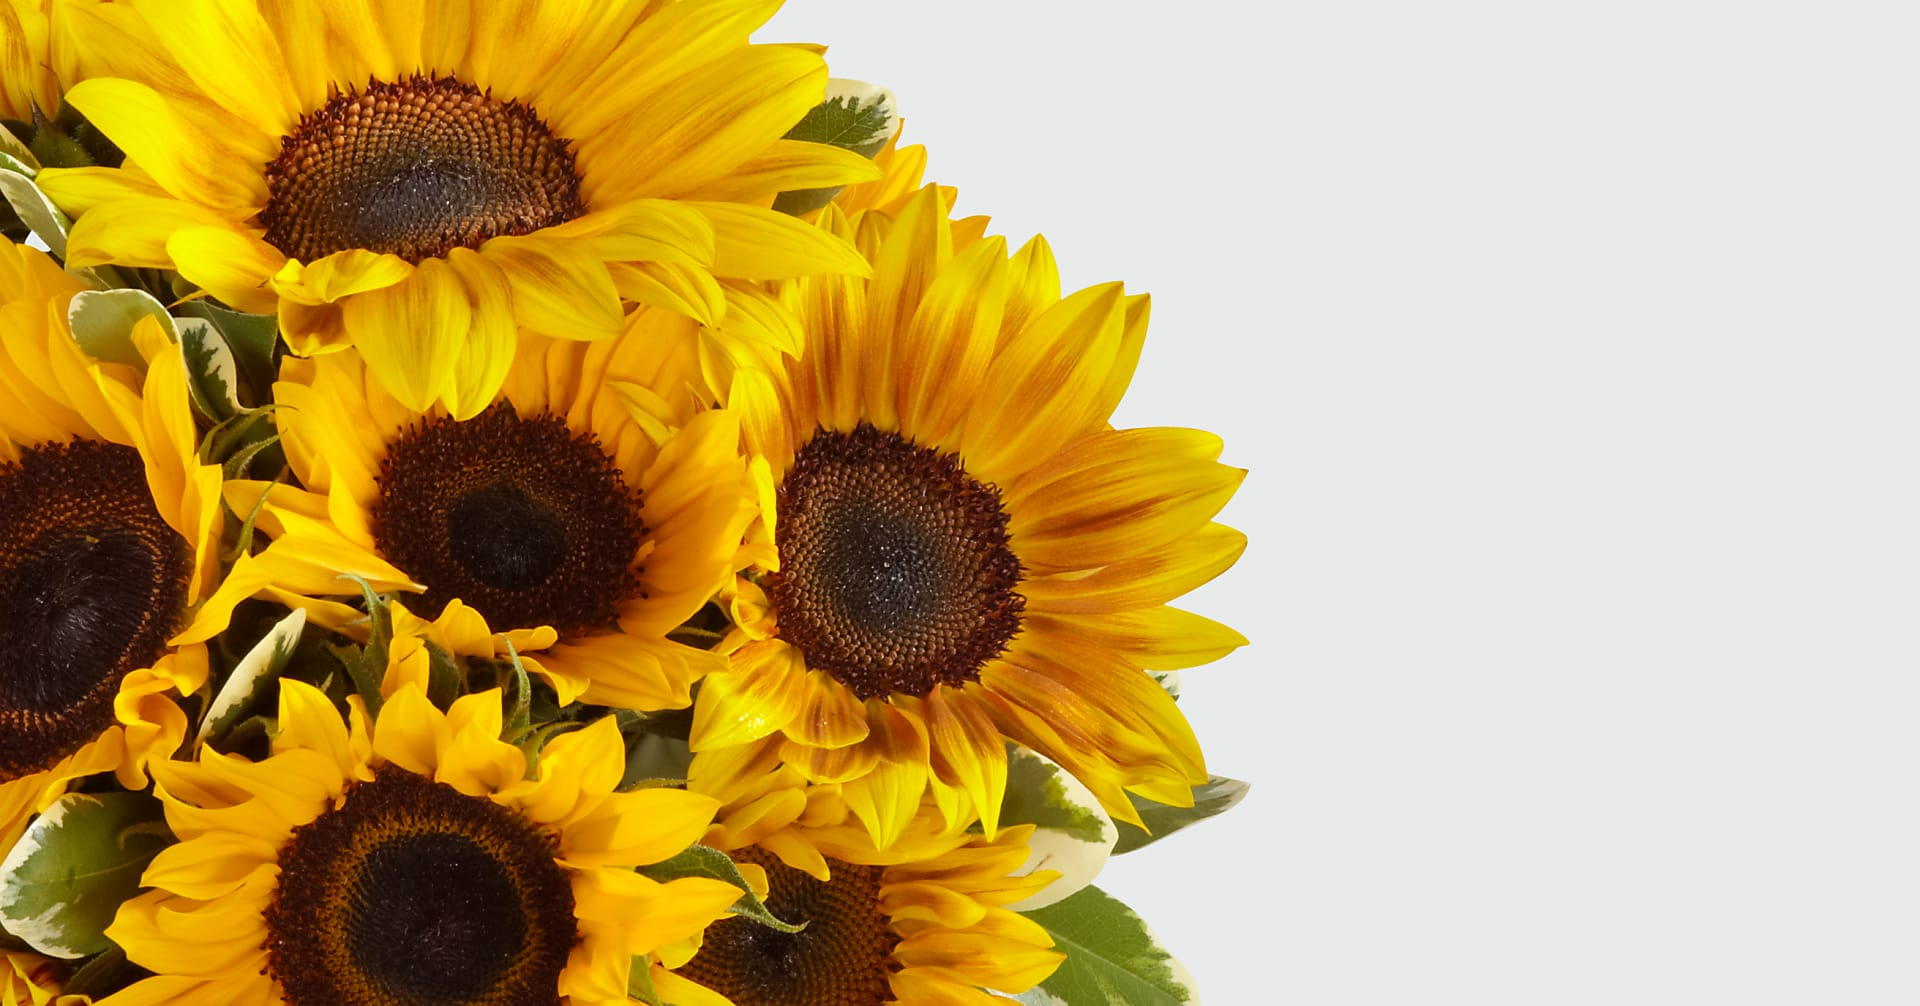 Honey Bee Sunflower Bouquet - Image 4 Of 4